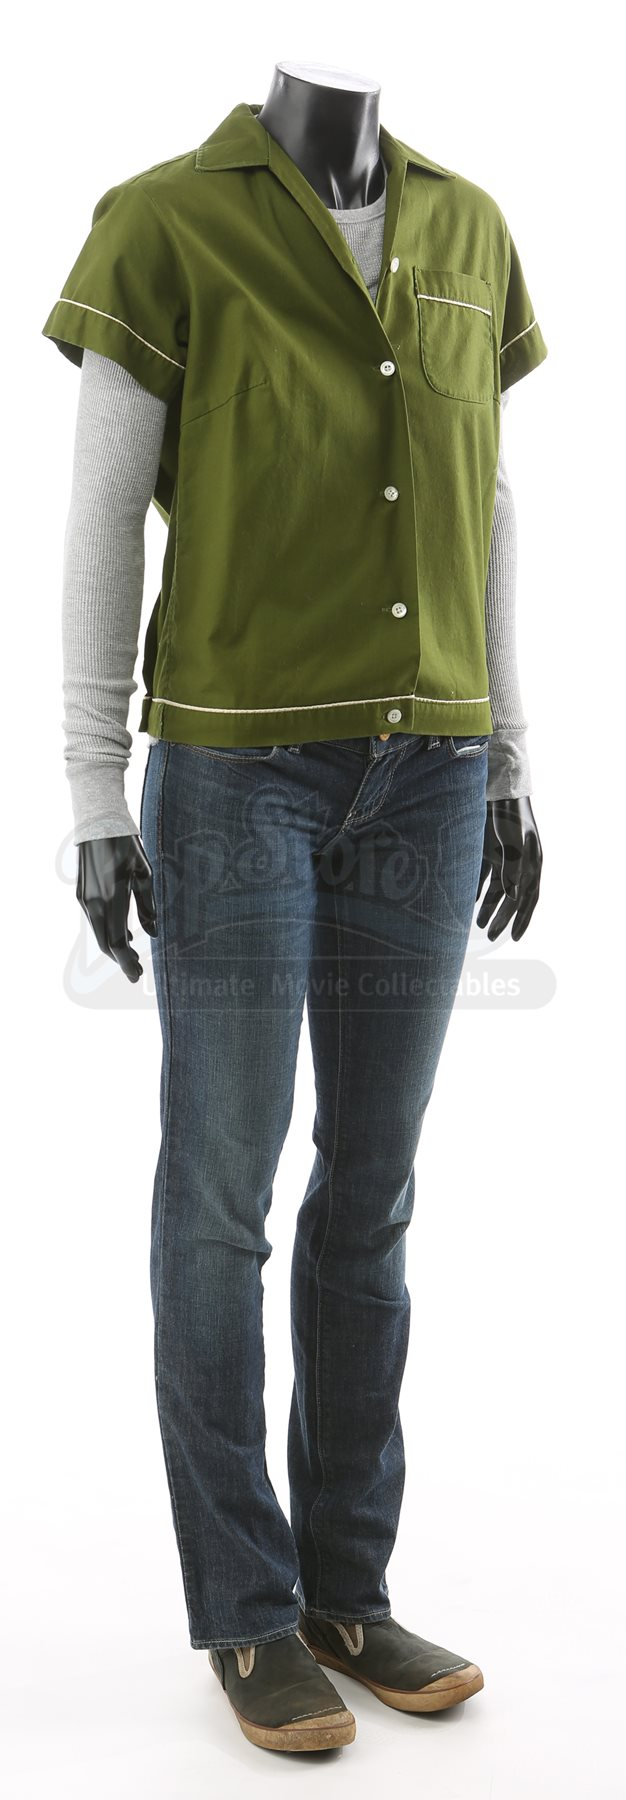 Bella Swan's First Day Costume - Current price: $2750